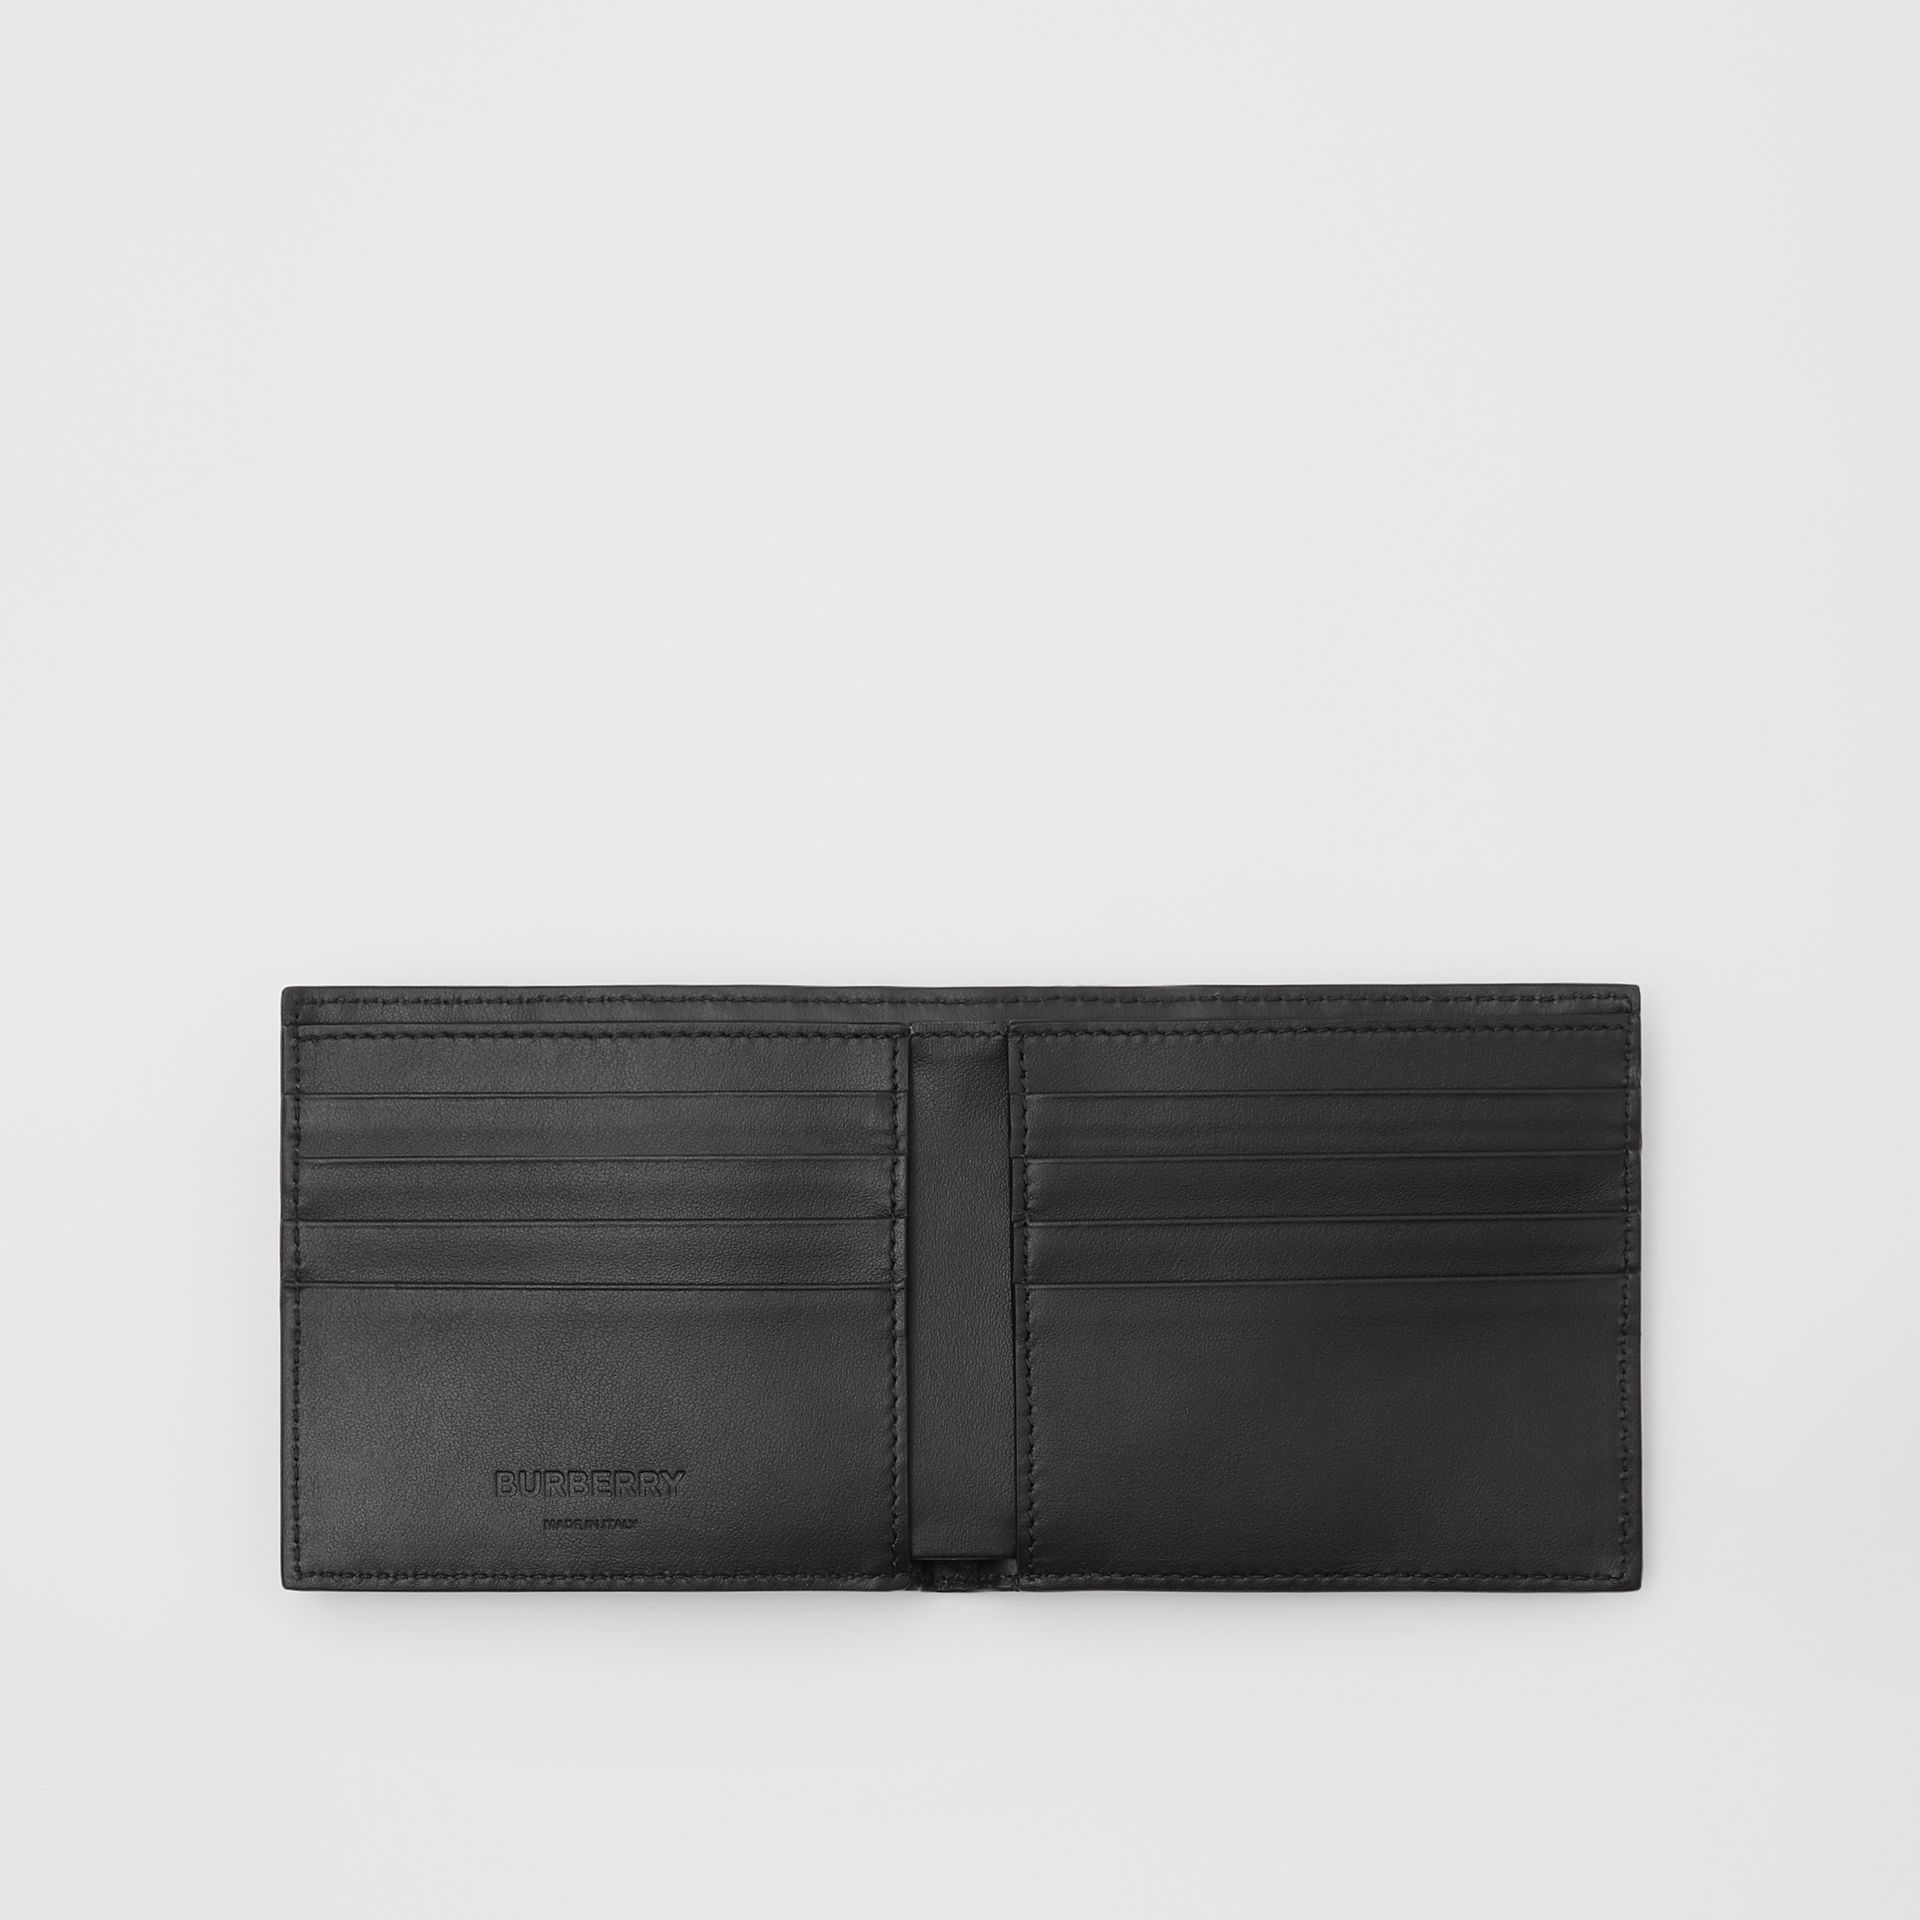 Monogram Leather International Bifold Wallet in Black - Men | Burberry Singapore - gallery image 2